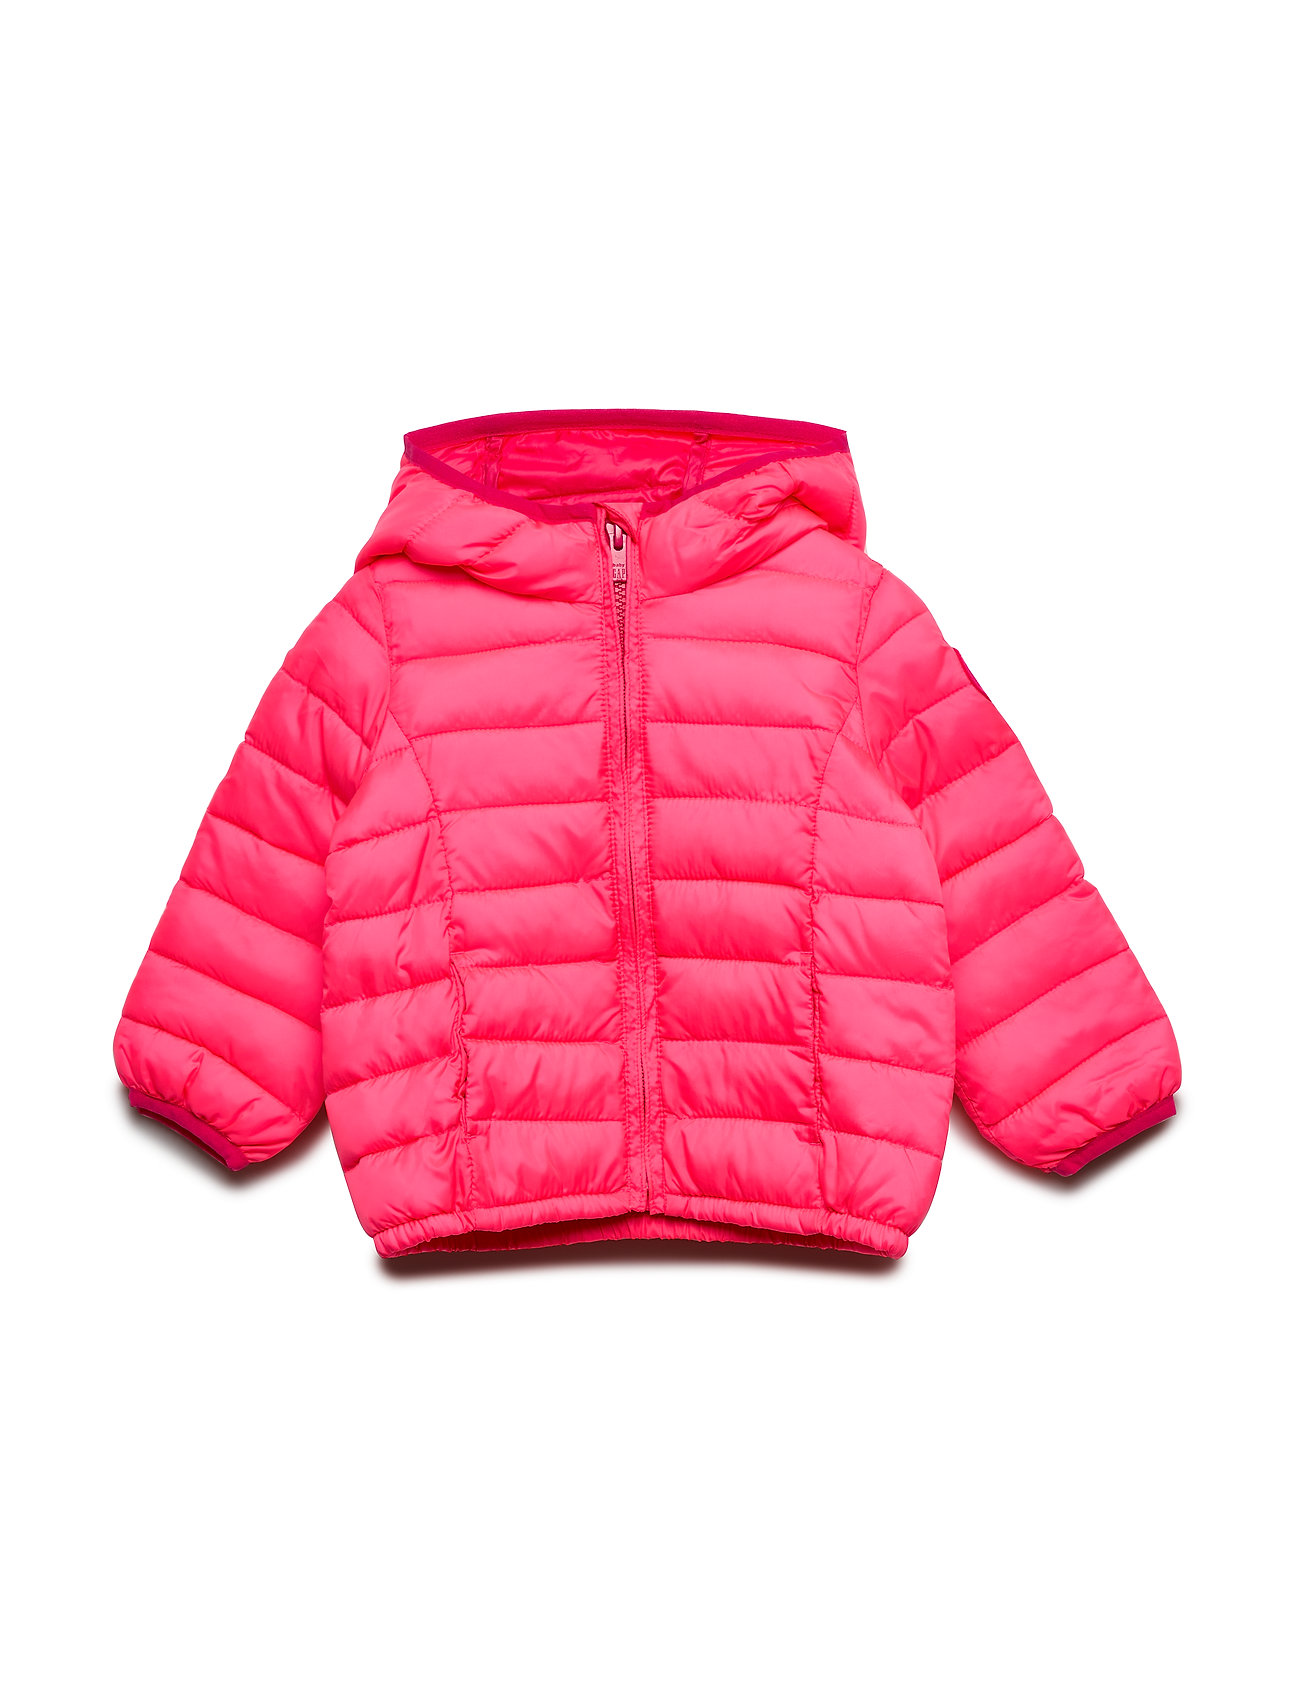 GAP Toddler ColdControl Lightweight Puffer - PINK LIGHT